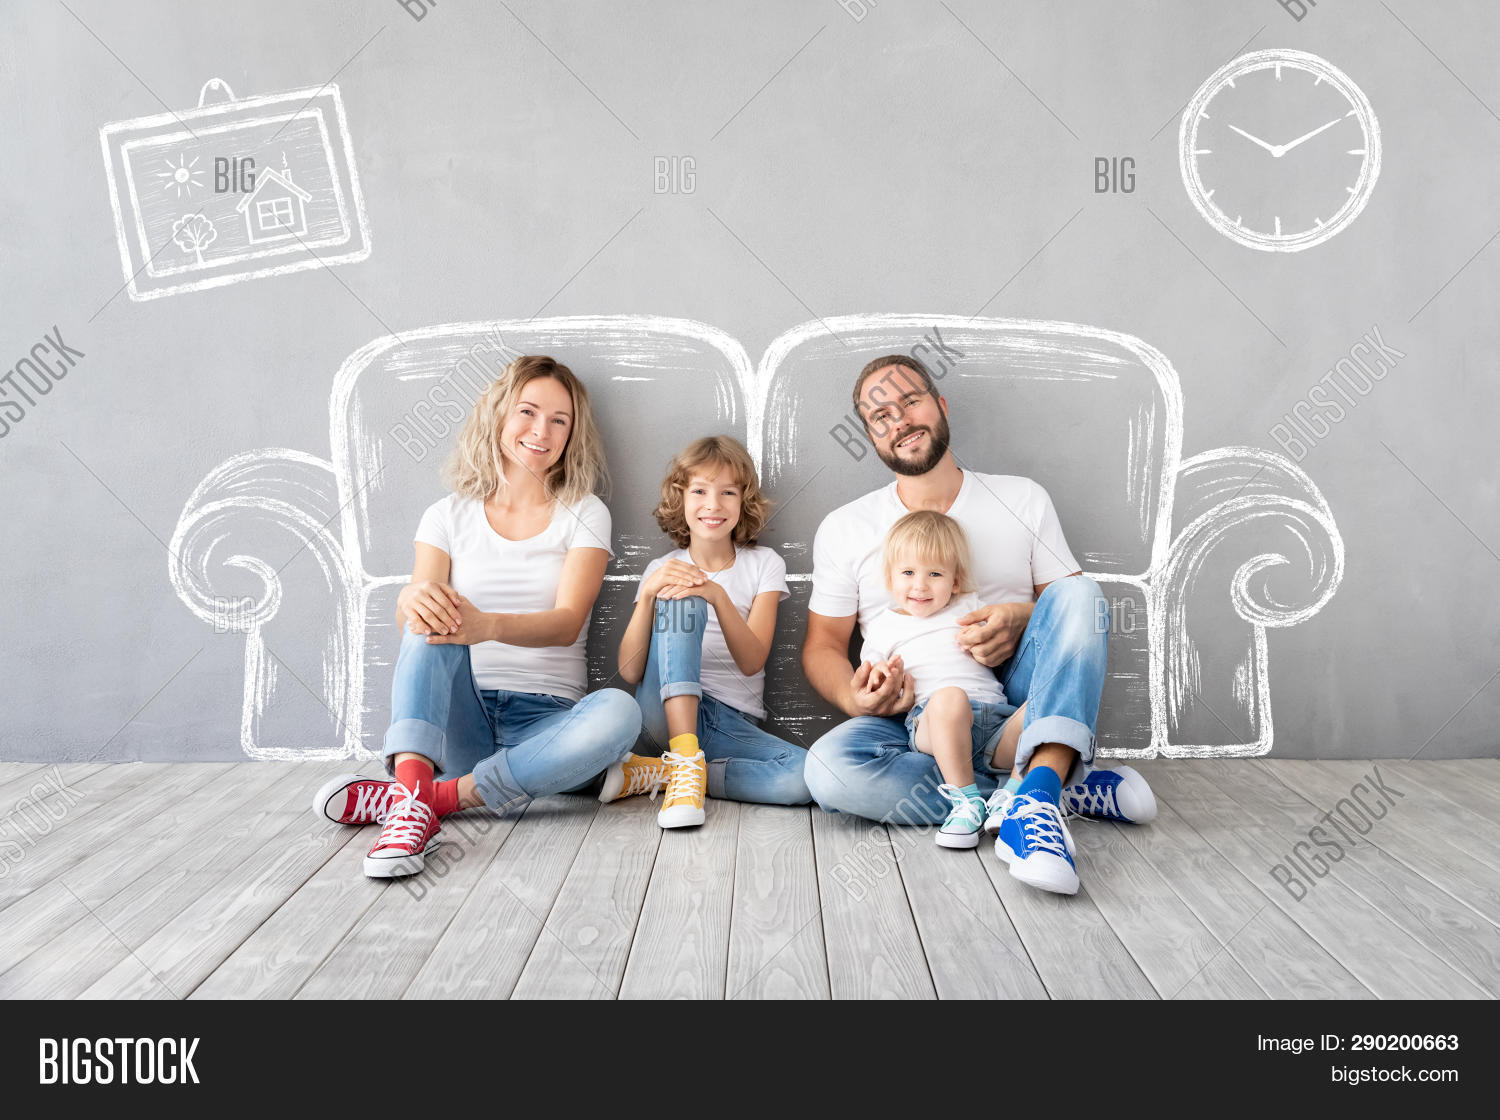 apartment,baby,background,beautiful,box,boy,cardboard,carton,casual,caucasian,children,concept,concrete,copy,day,enjoy,family,father,four,fun,girl,group,happiness,happy,home,house,indoor,interior,joy,kids,lifestyle,man,mother,moving,new,packaging,people,play,portrait,relocation,room,smile,space,spring,toddler,together,wall,woman